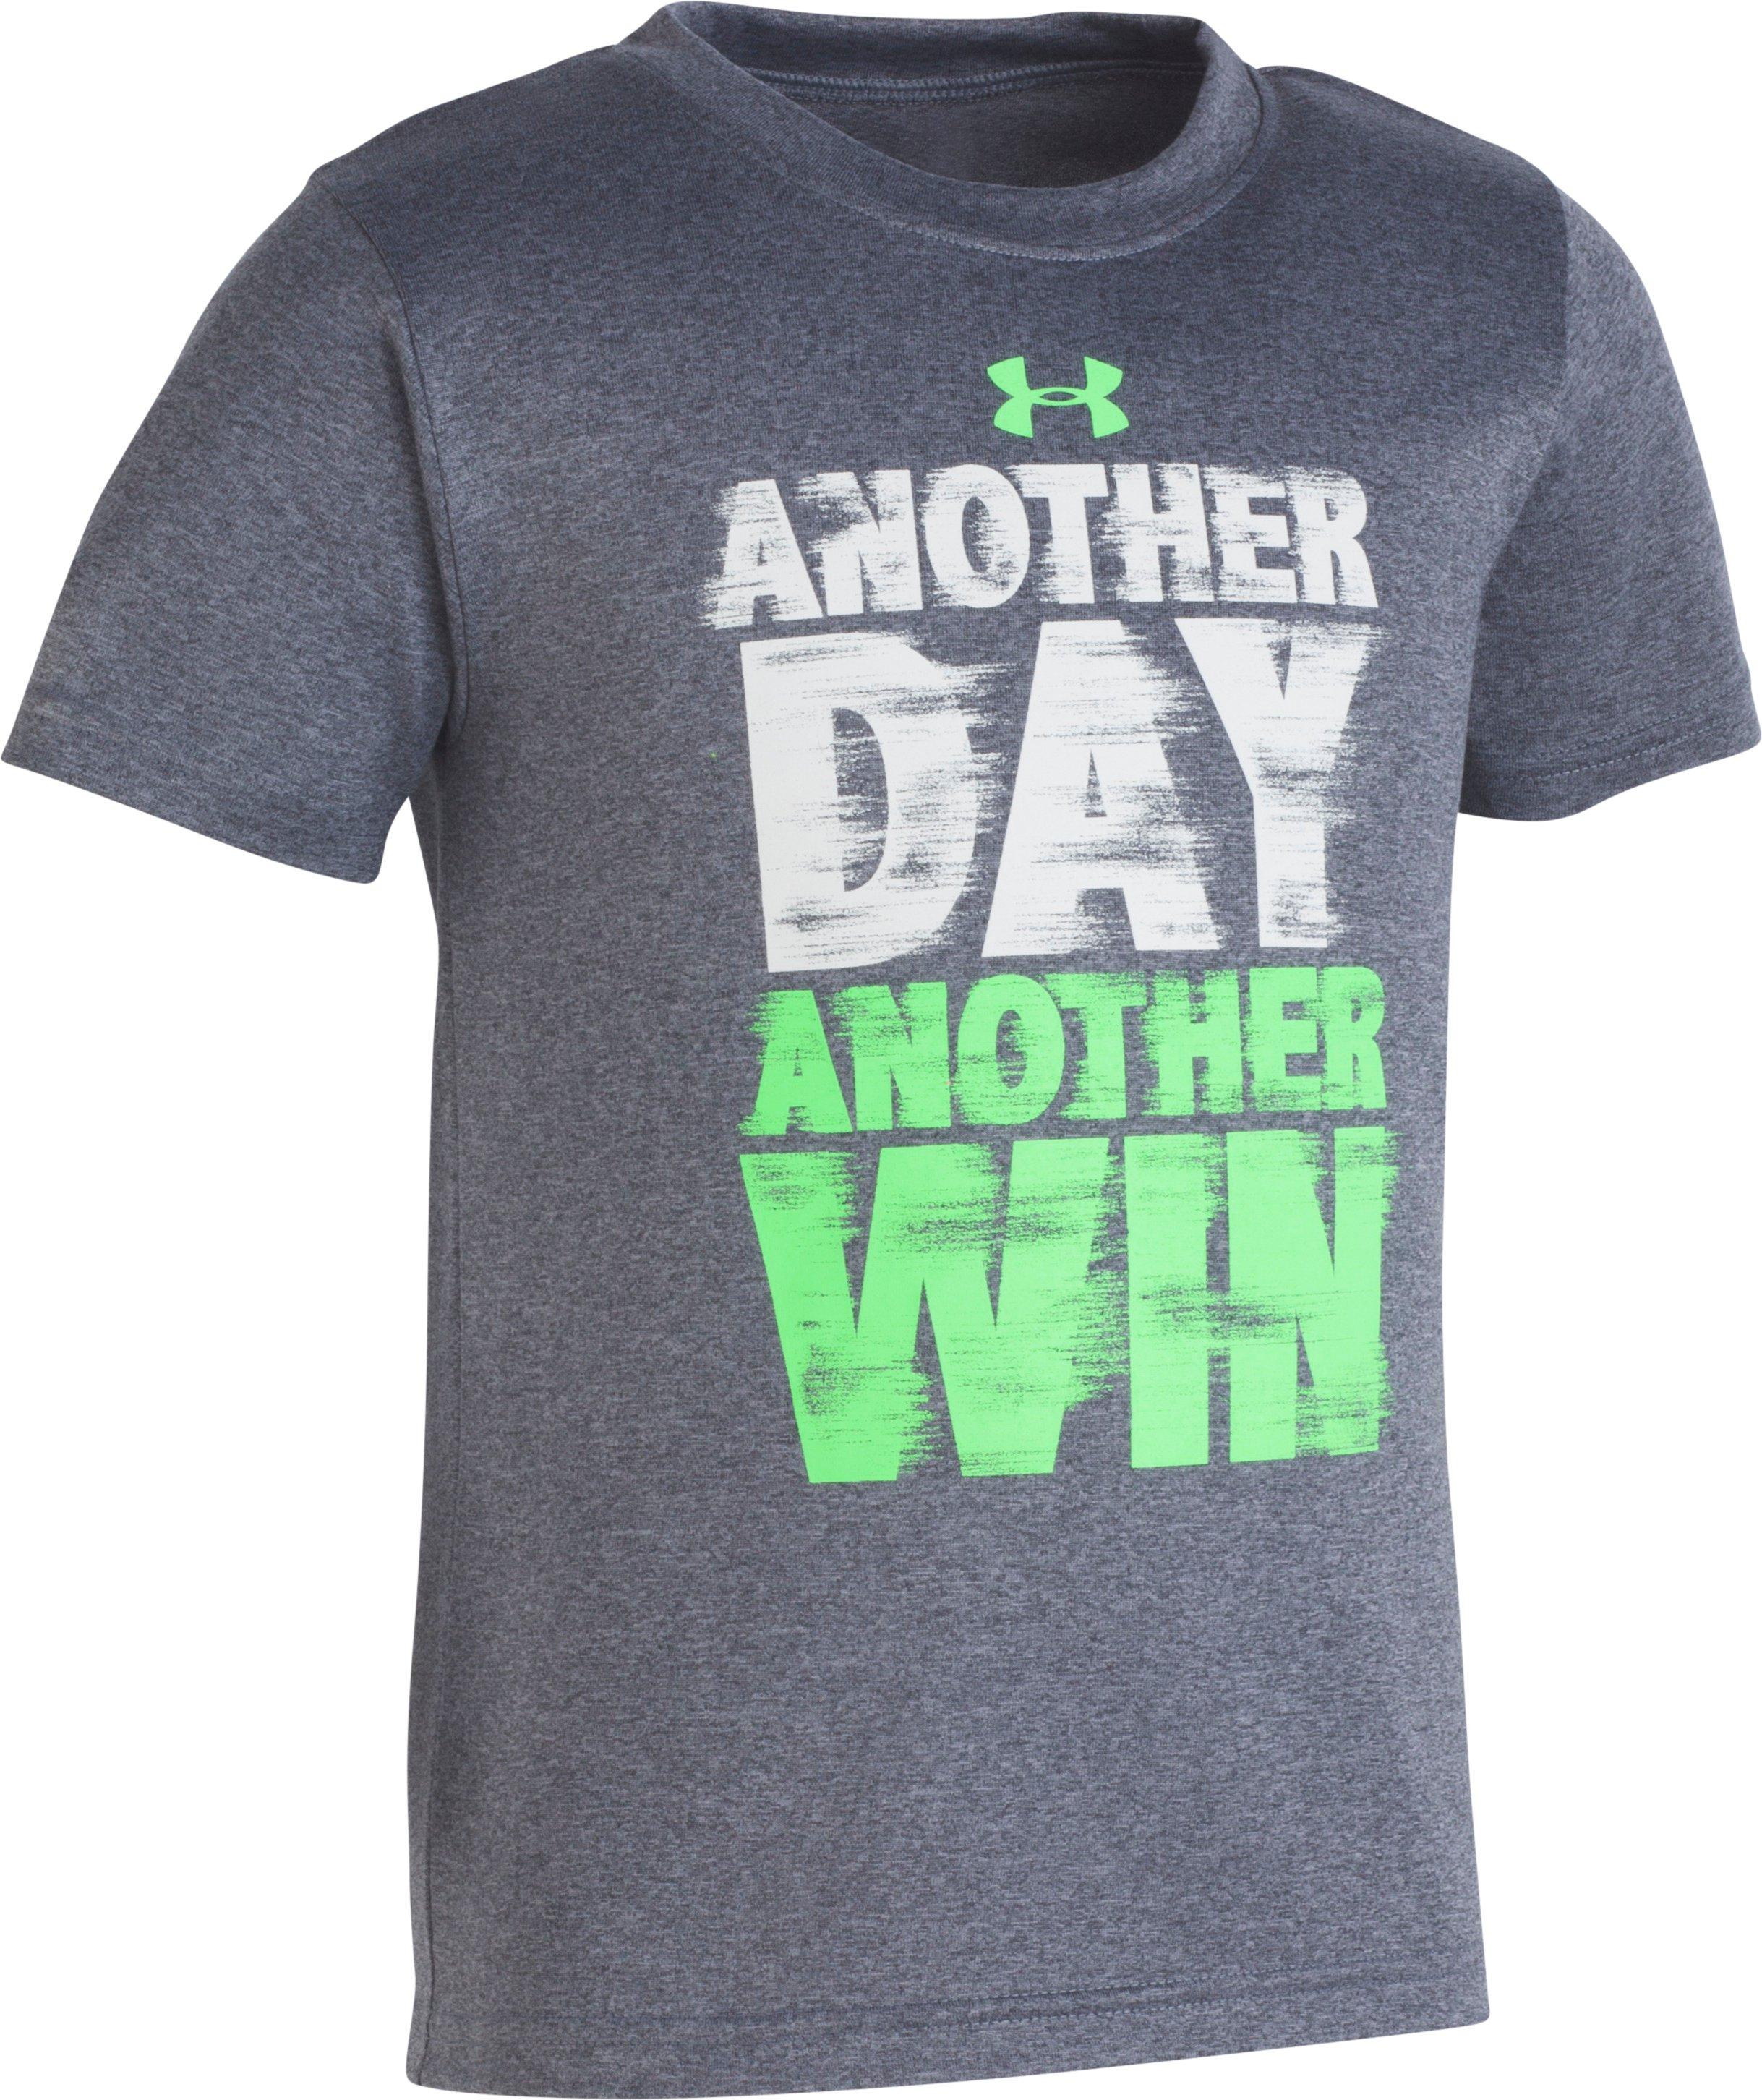 Boys' Toddler UA Another Day Another Win T-Shirt , Charcoal Medium Heather